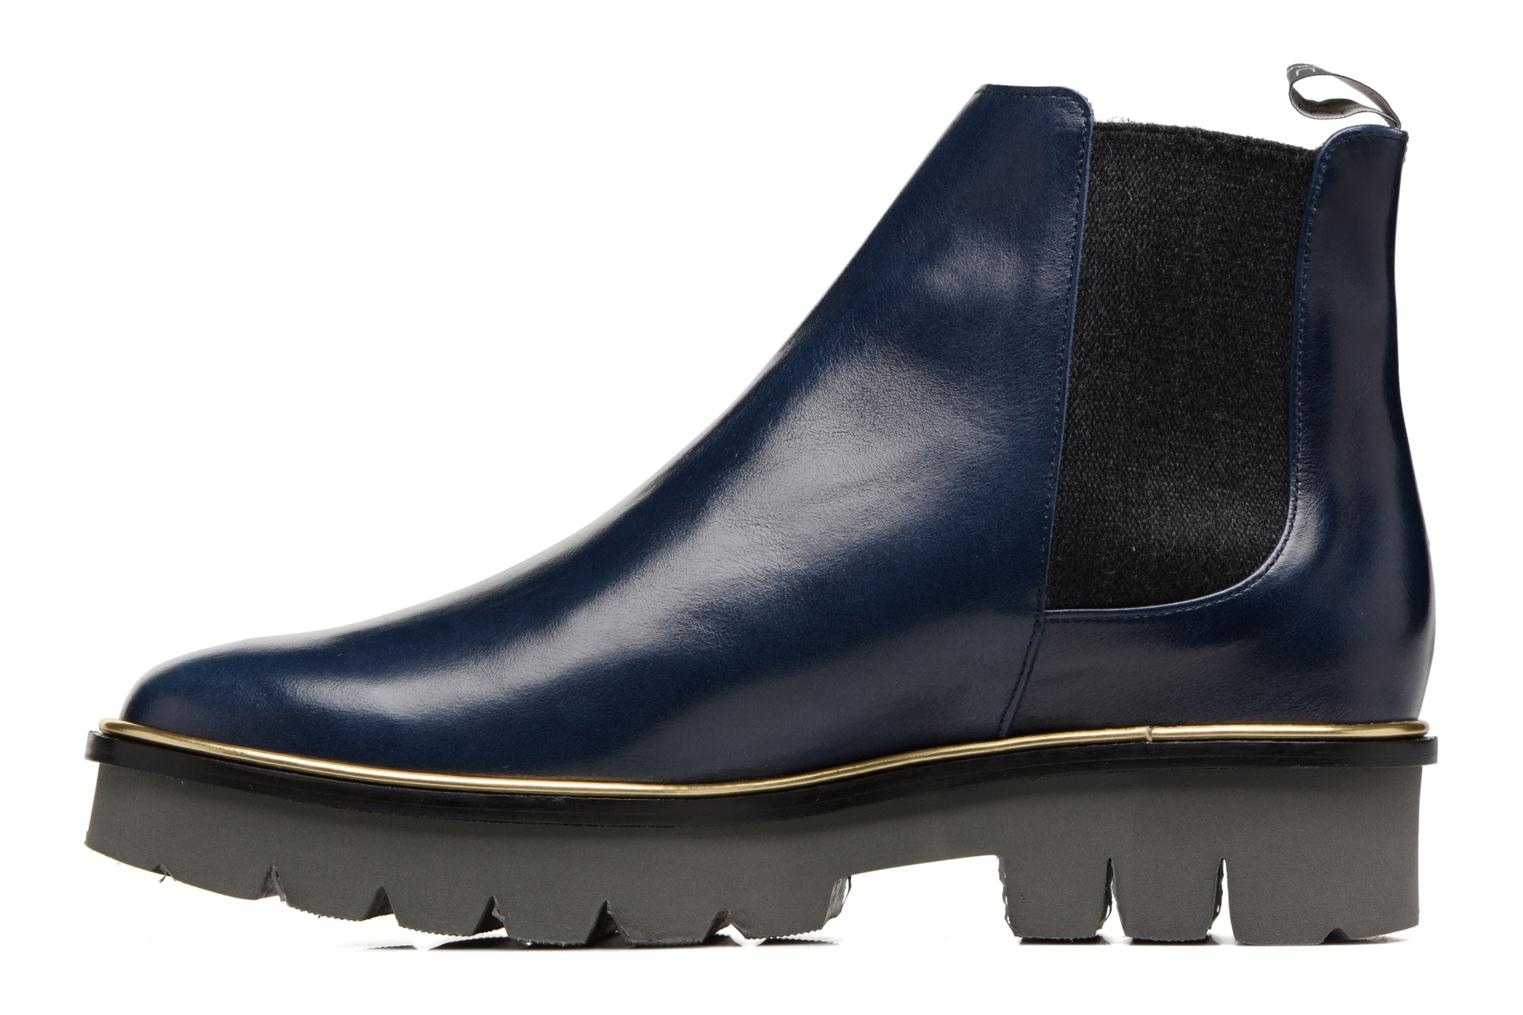 Bottines et boots MAURICE manufacture Charly Bleu vue face